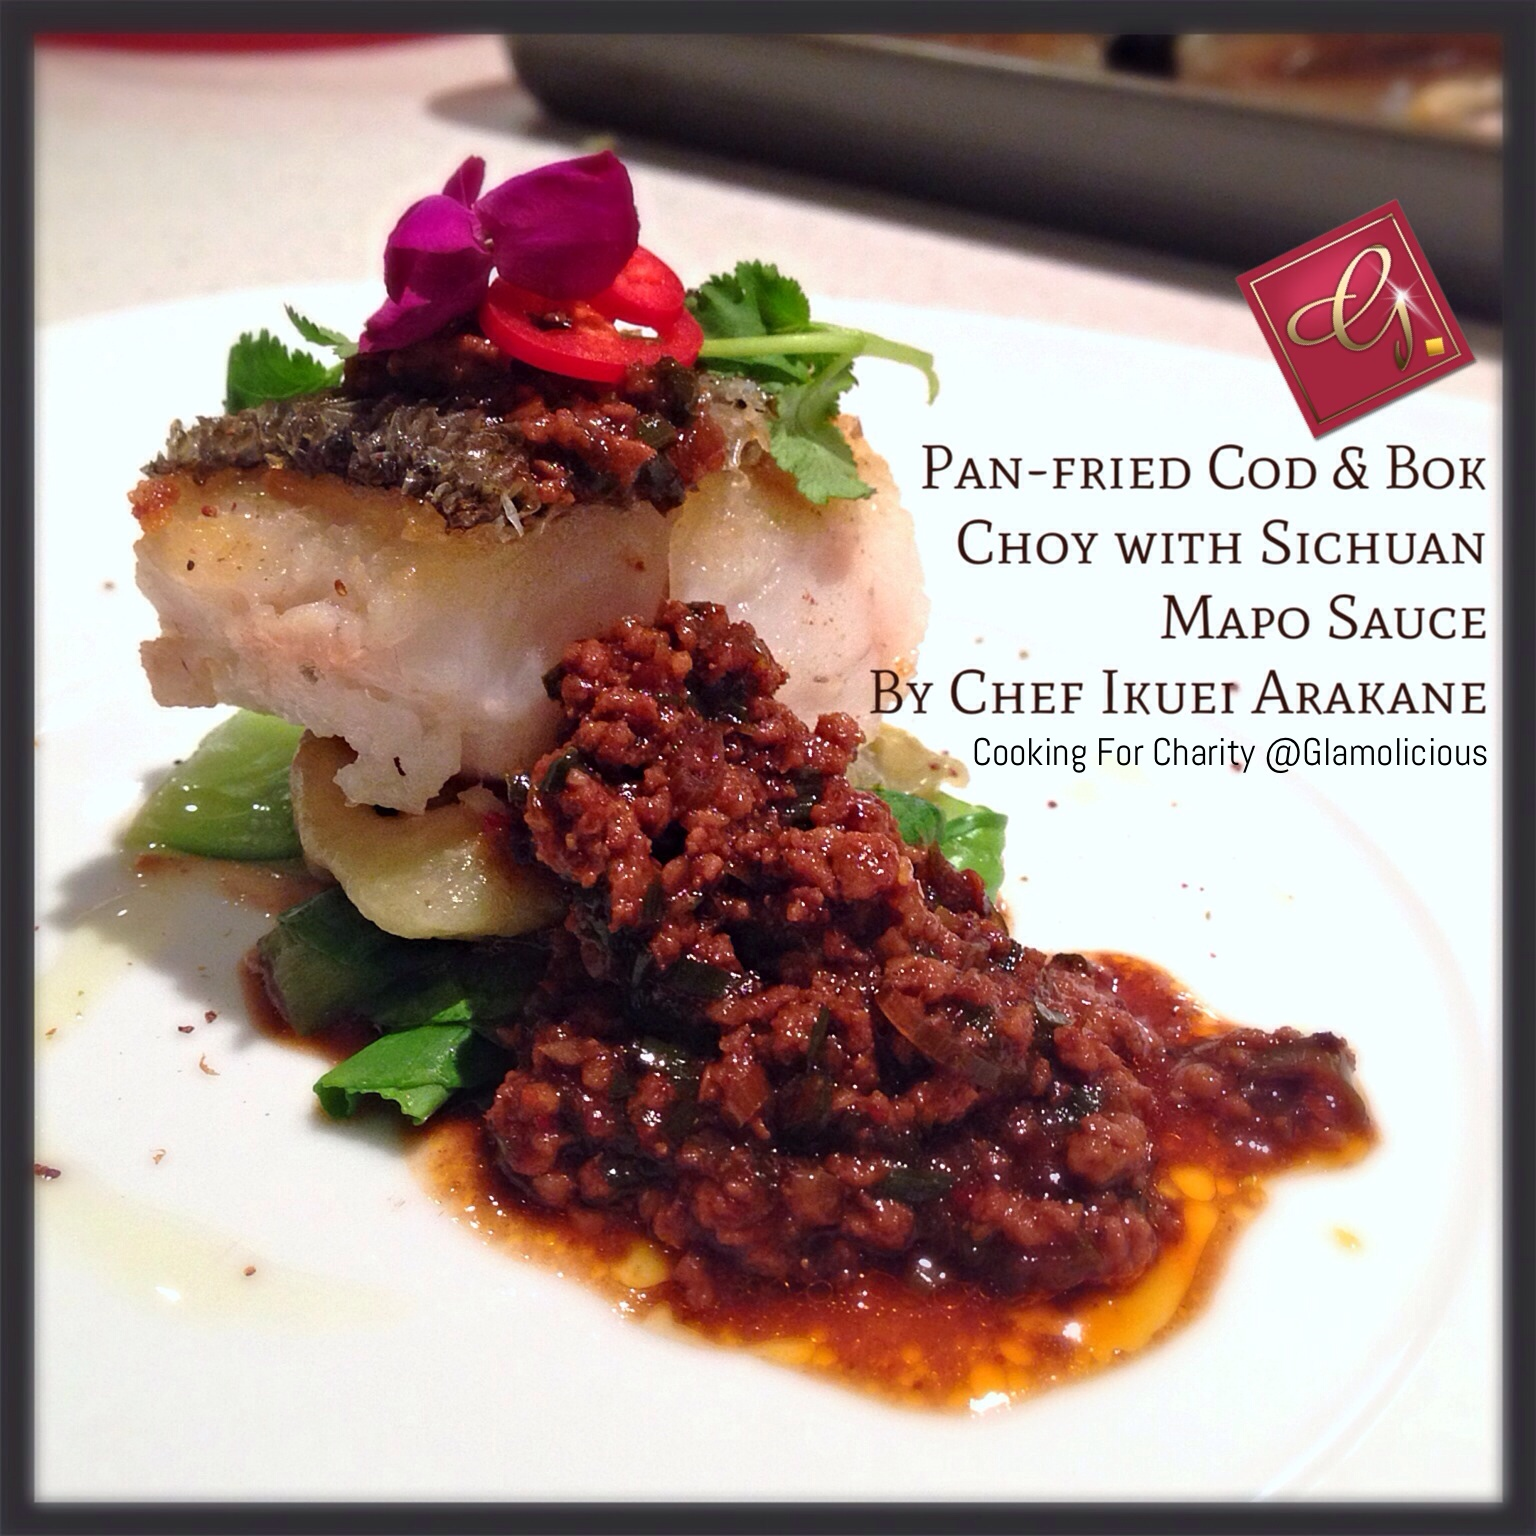 Pan-fried Cod Fish & Bok Choy with Sichuan Mapo Sauce by Chef Ikuei Arakane